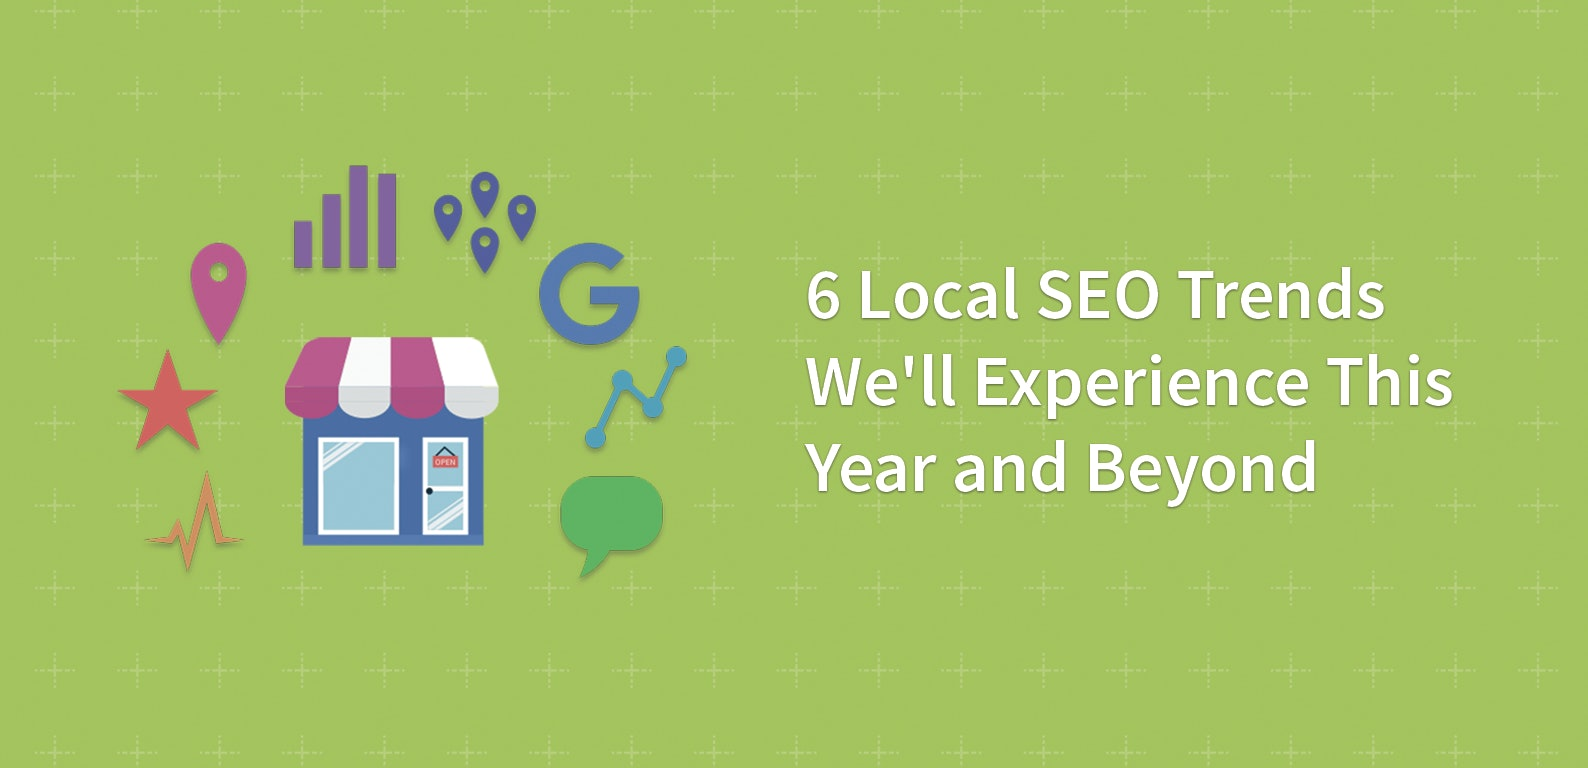 6-Local-SEO-Trends-We'll-Experience-This-Year-and-BeyondHeader